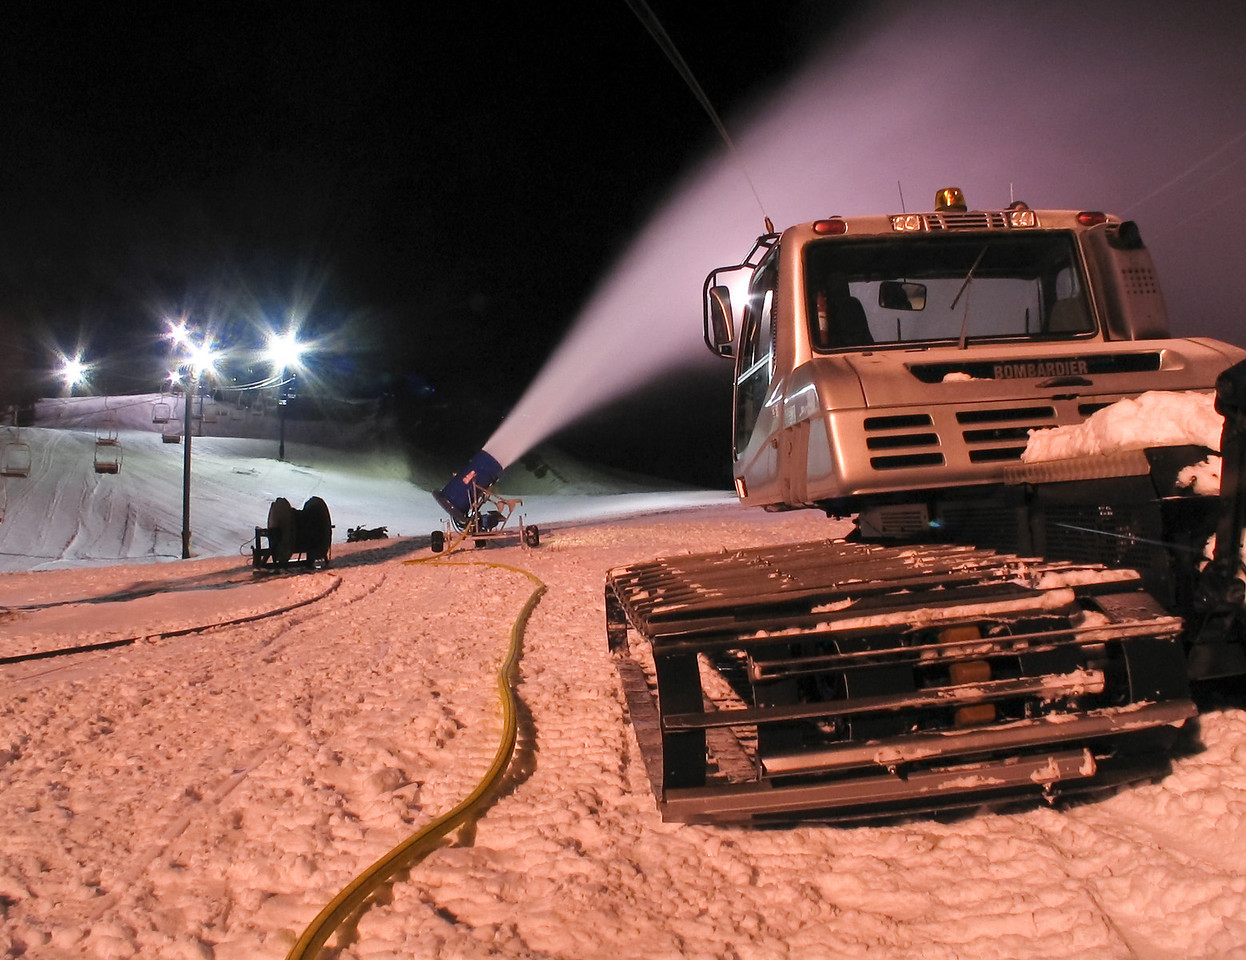 A shot from a few years ago:  Manning the then-single snowgun we had at night.<br /> <br /> Lens used: n/a (Canon S1 IS point-and-shoot)